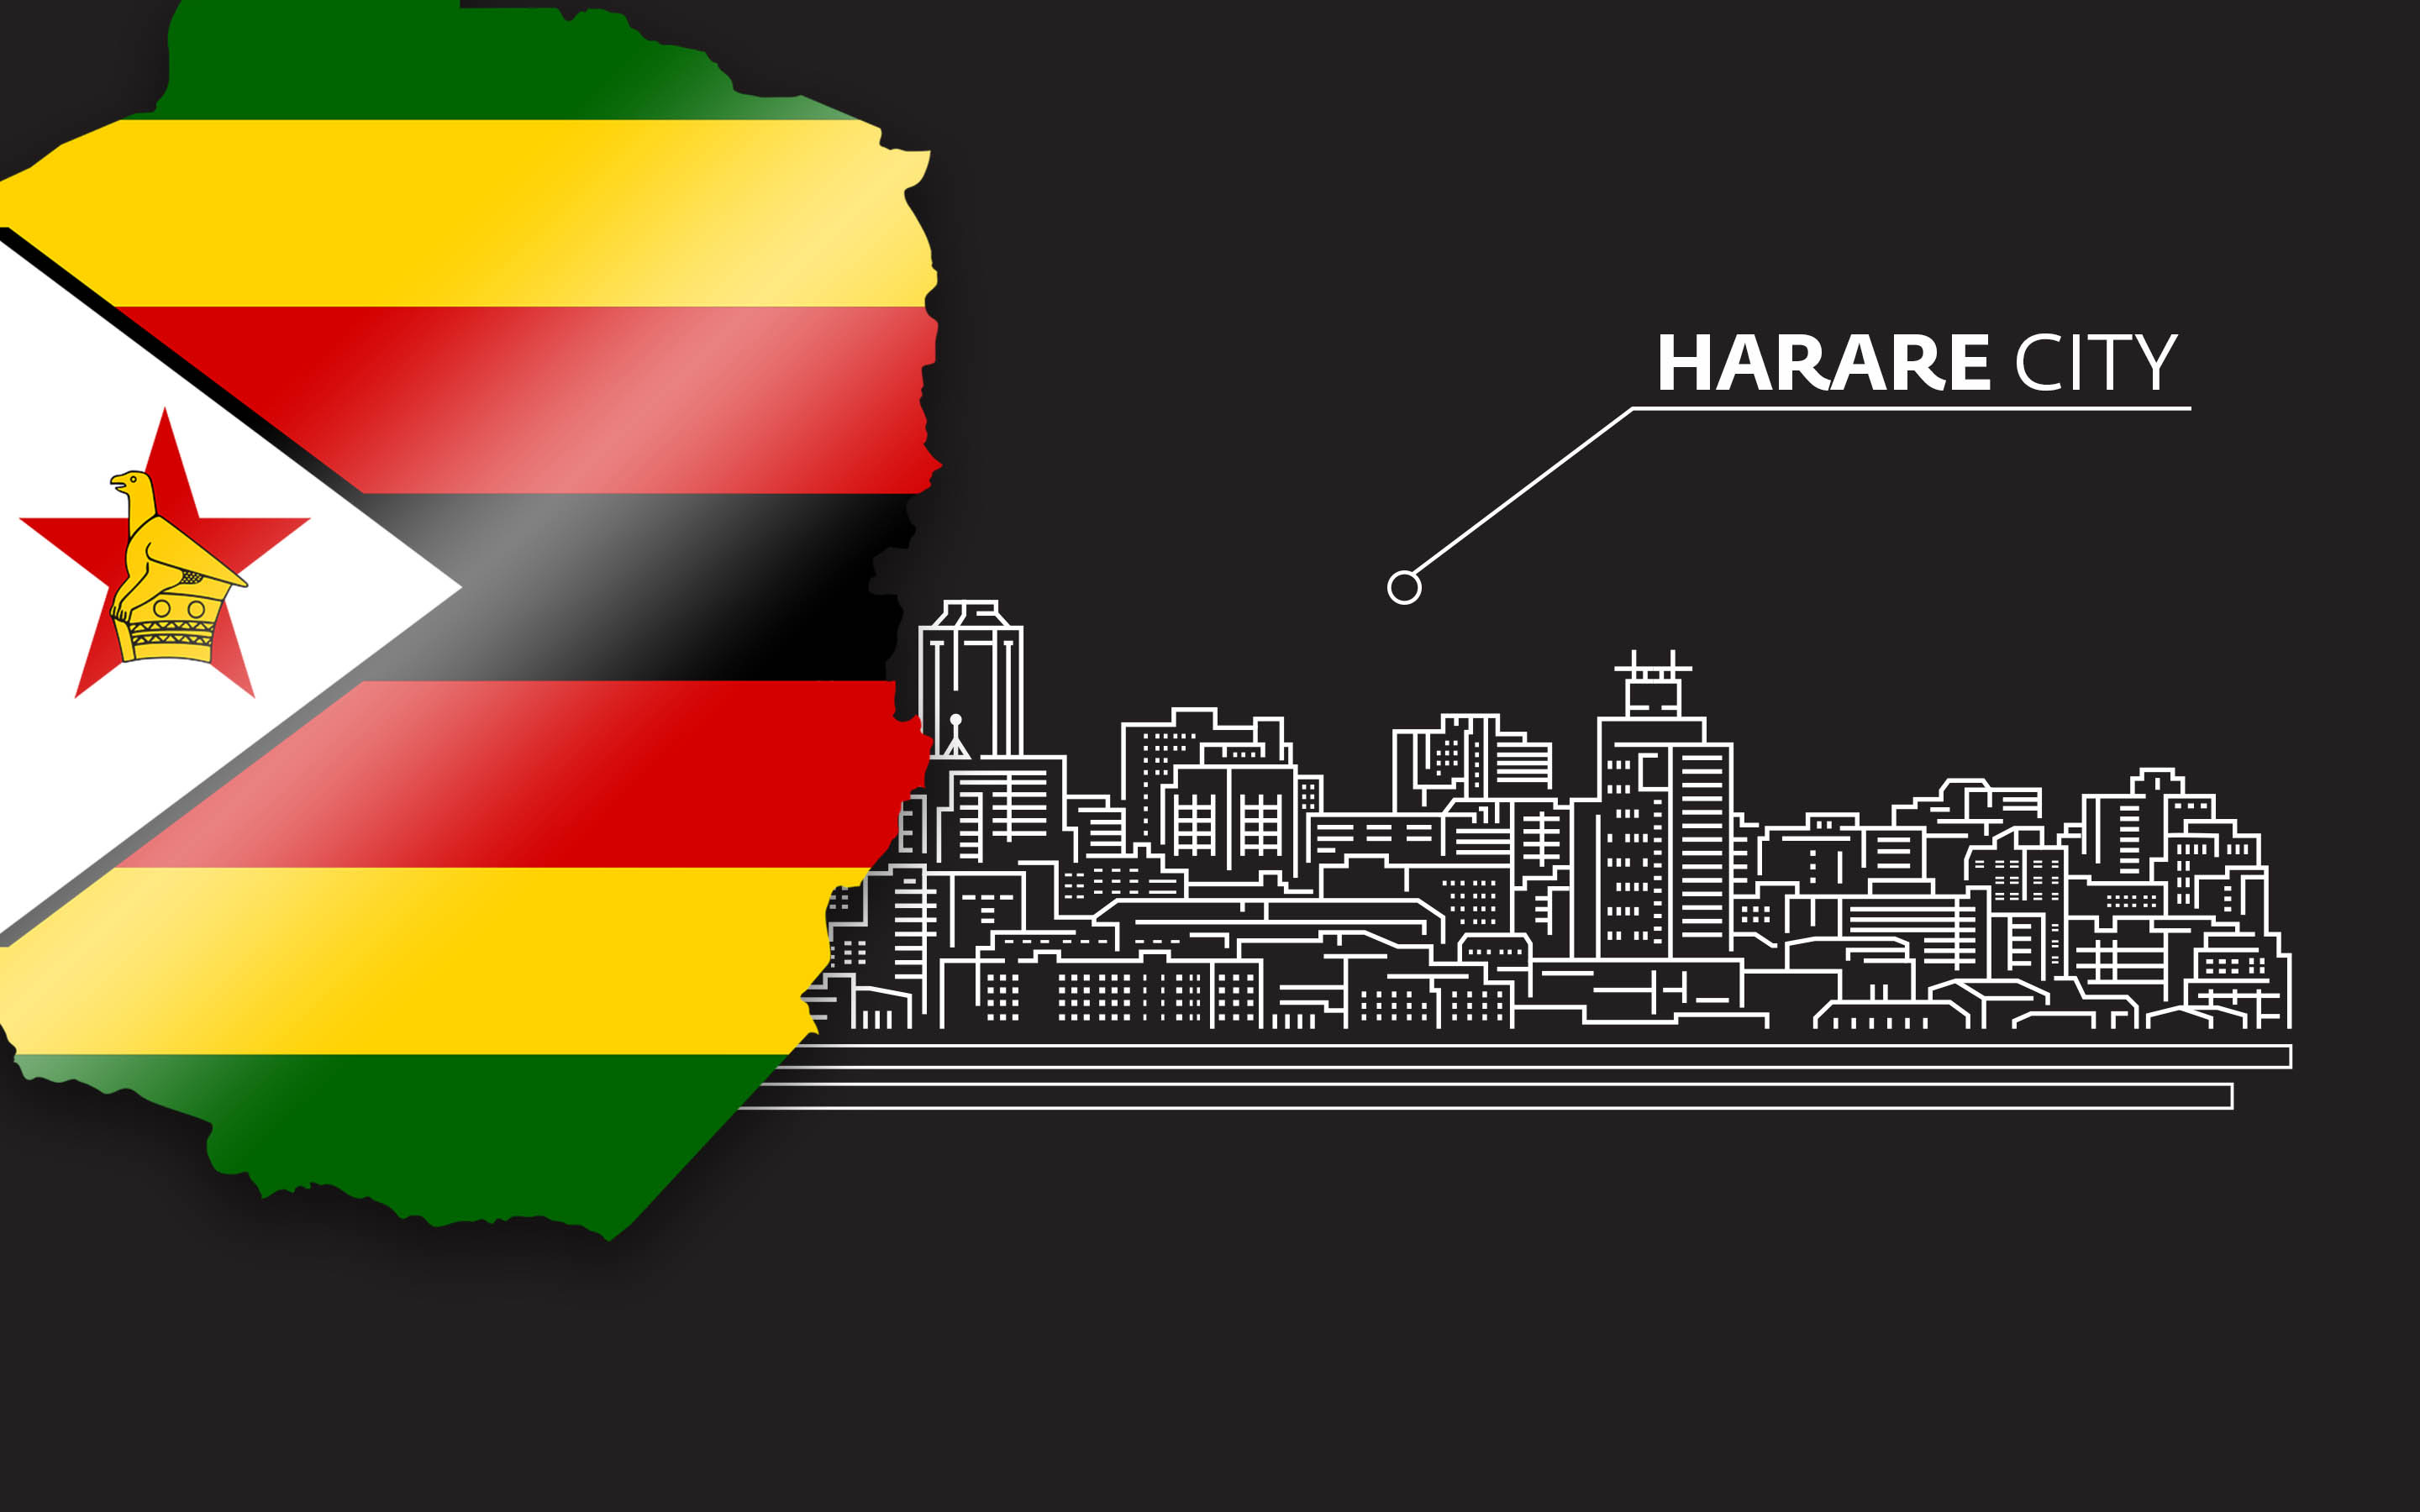 Outline of Harare, Zimbabwe, with Zimbabwean flag overlay